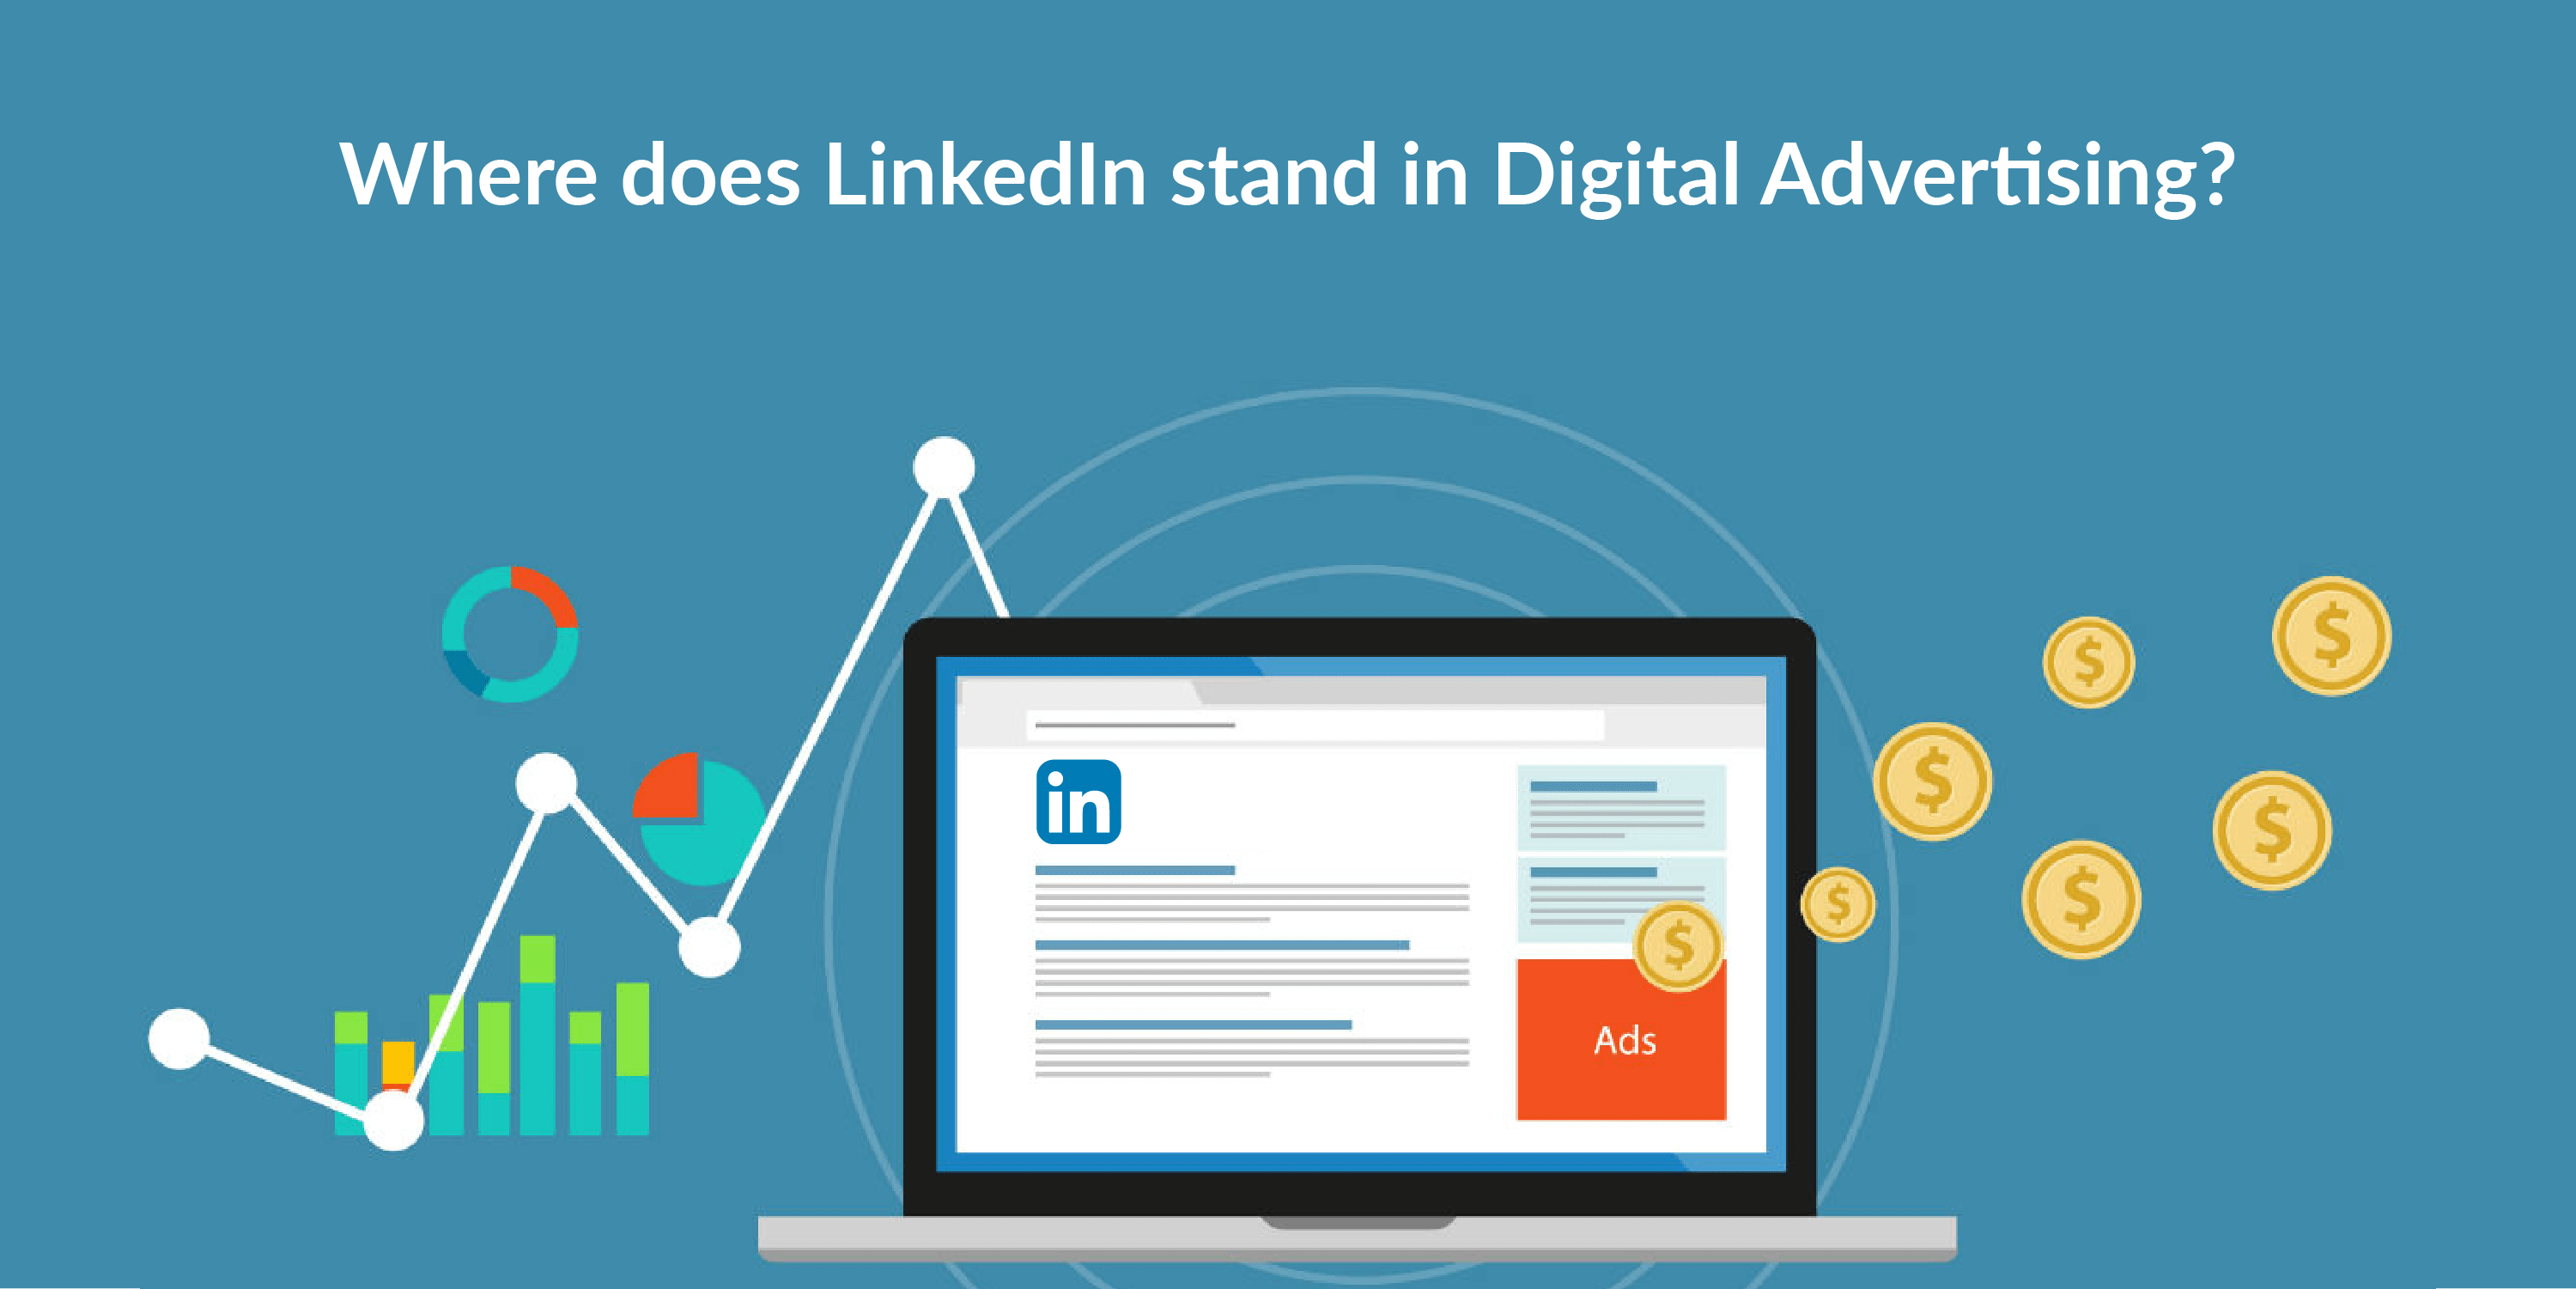 WHERE DOES LINKEDIN STAND IN DIGITAL ADVERTISING? Carousel Ads